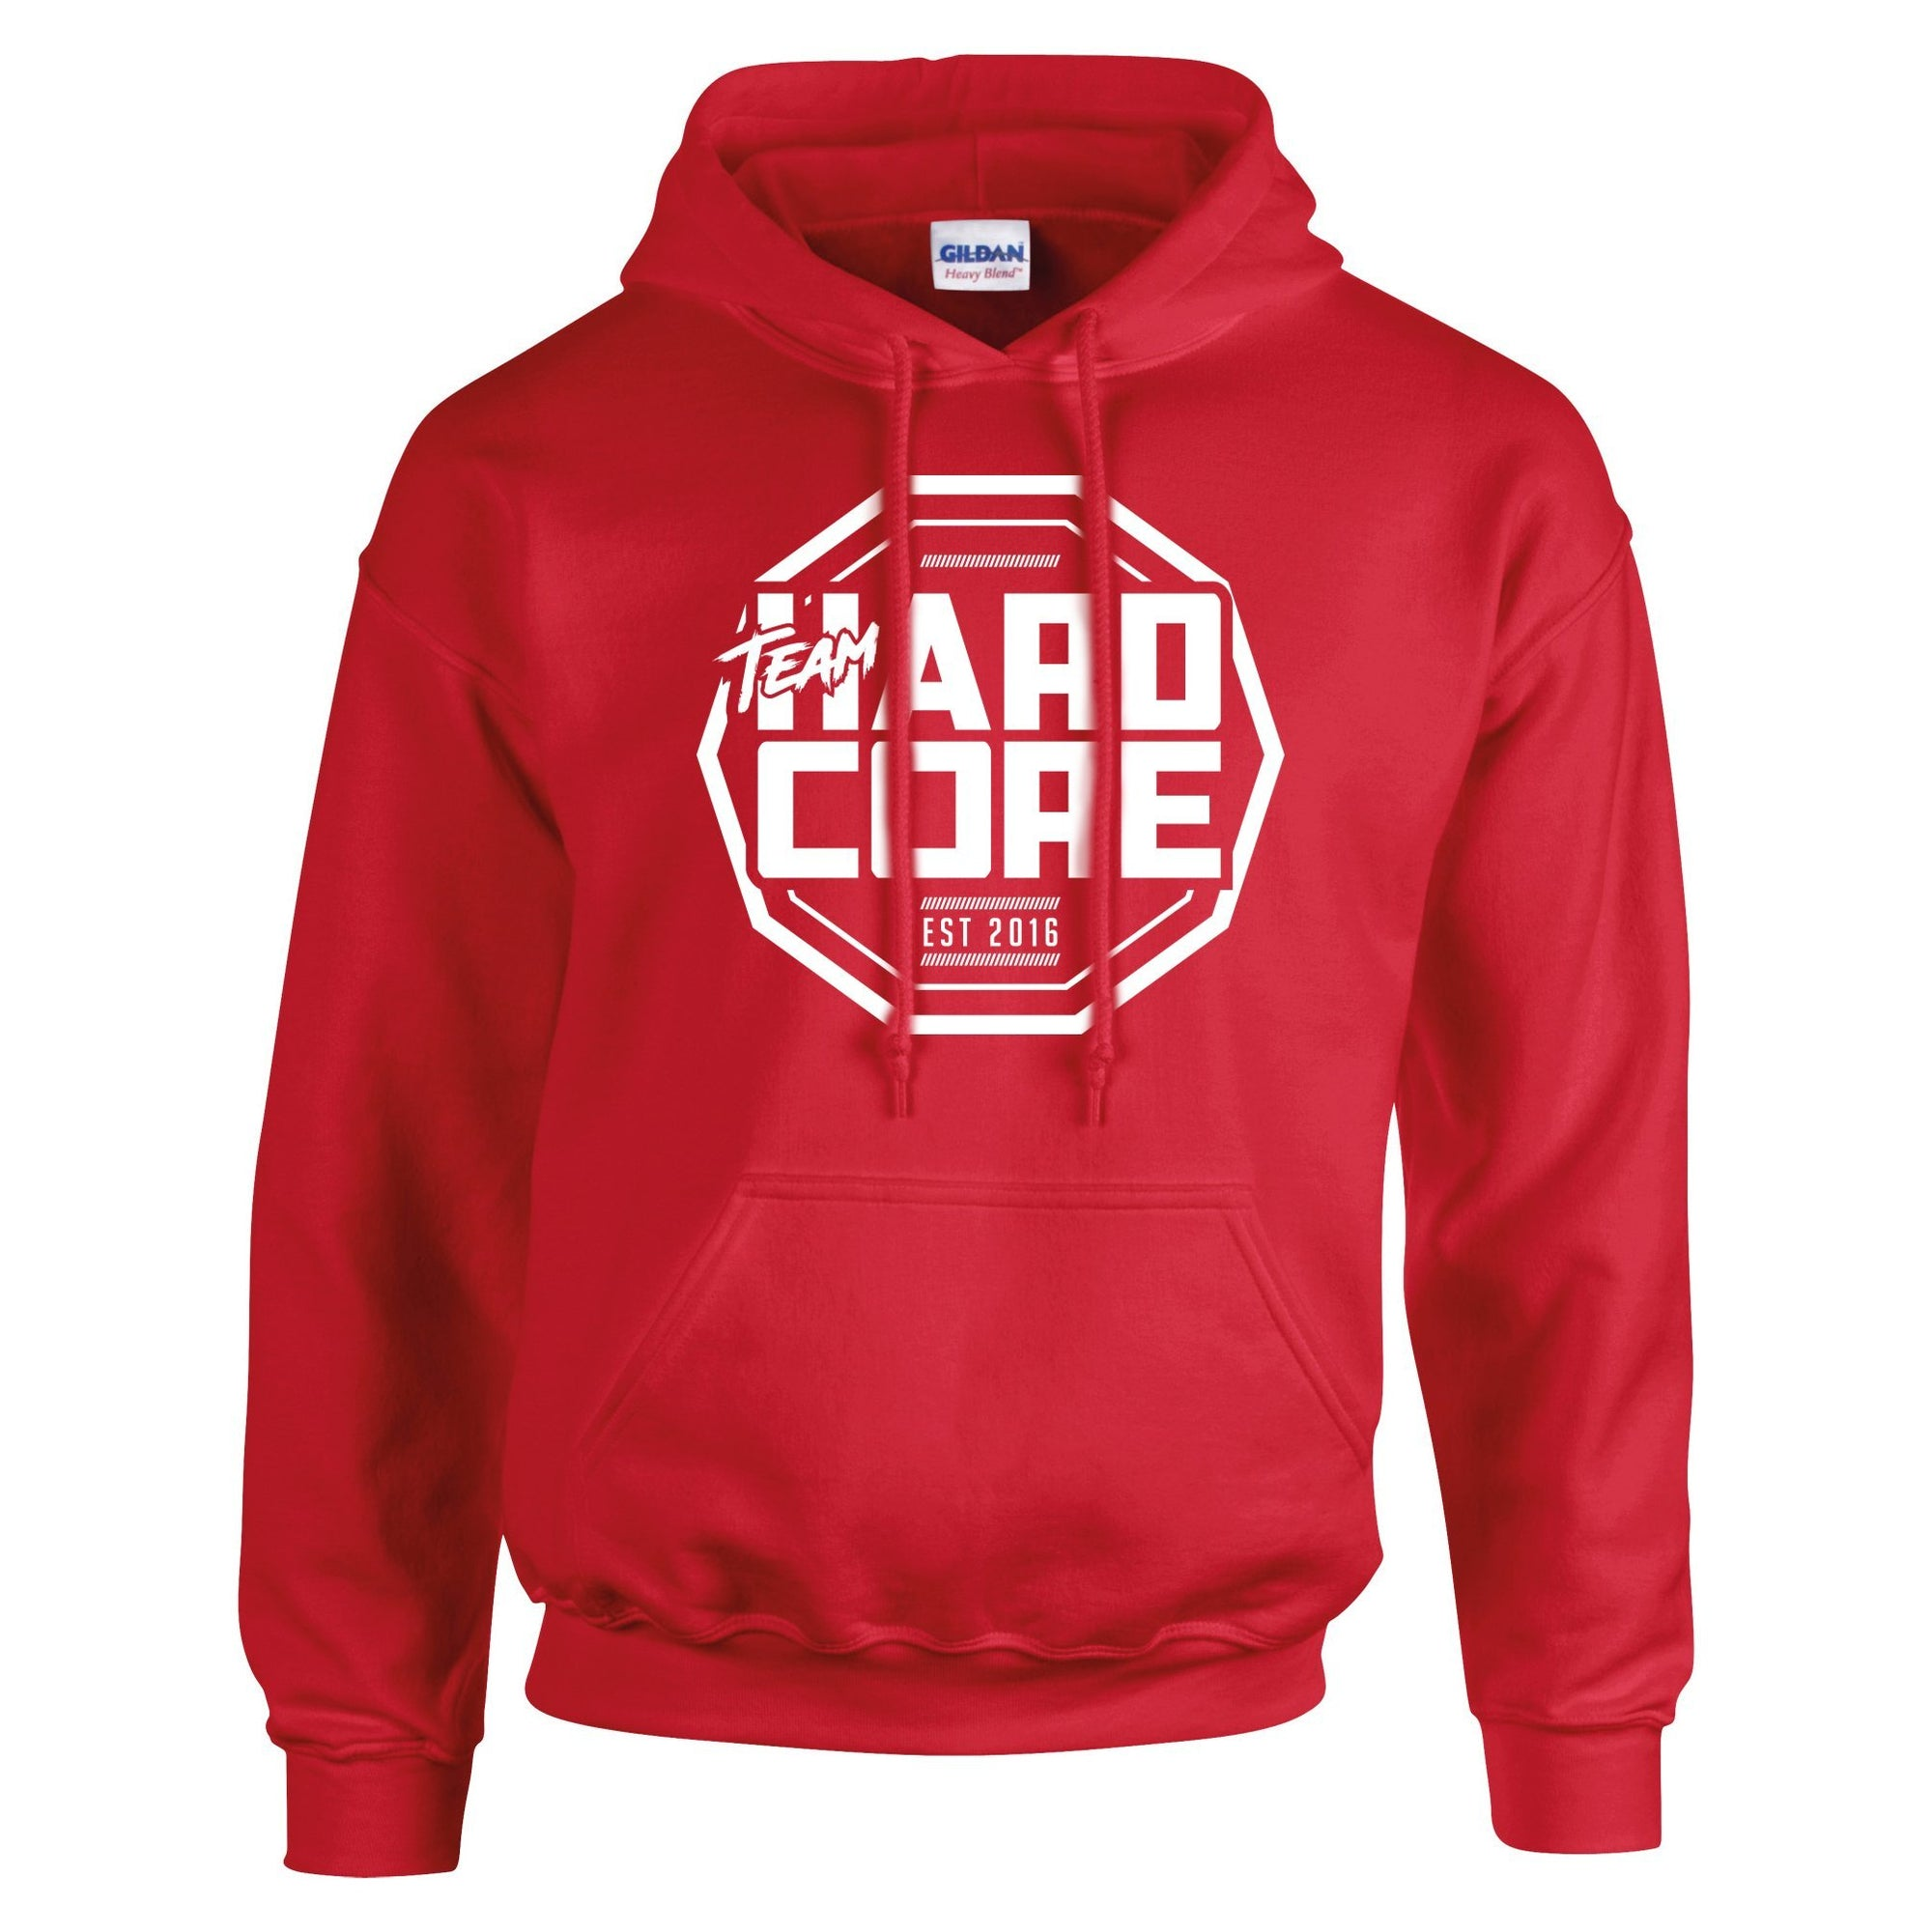 Team Hardcore Unisex Hoodie - Red & White Team Hardcore Small